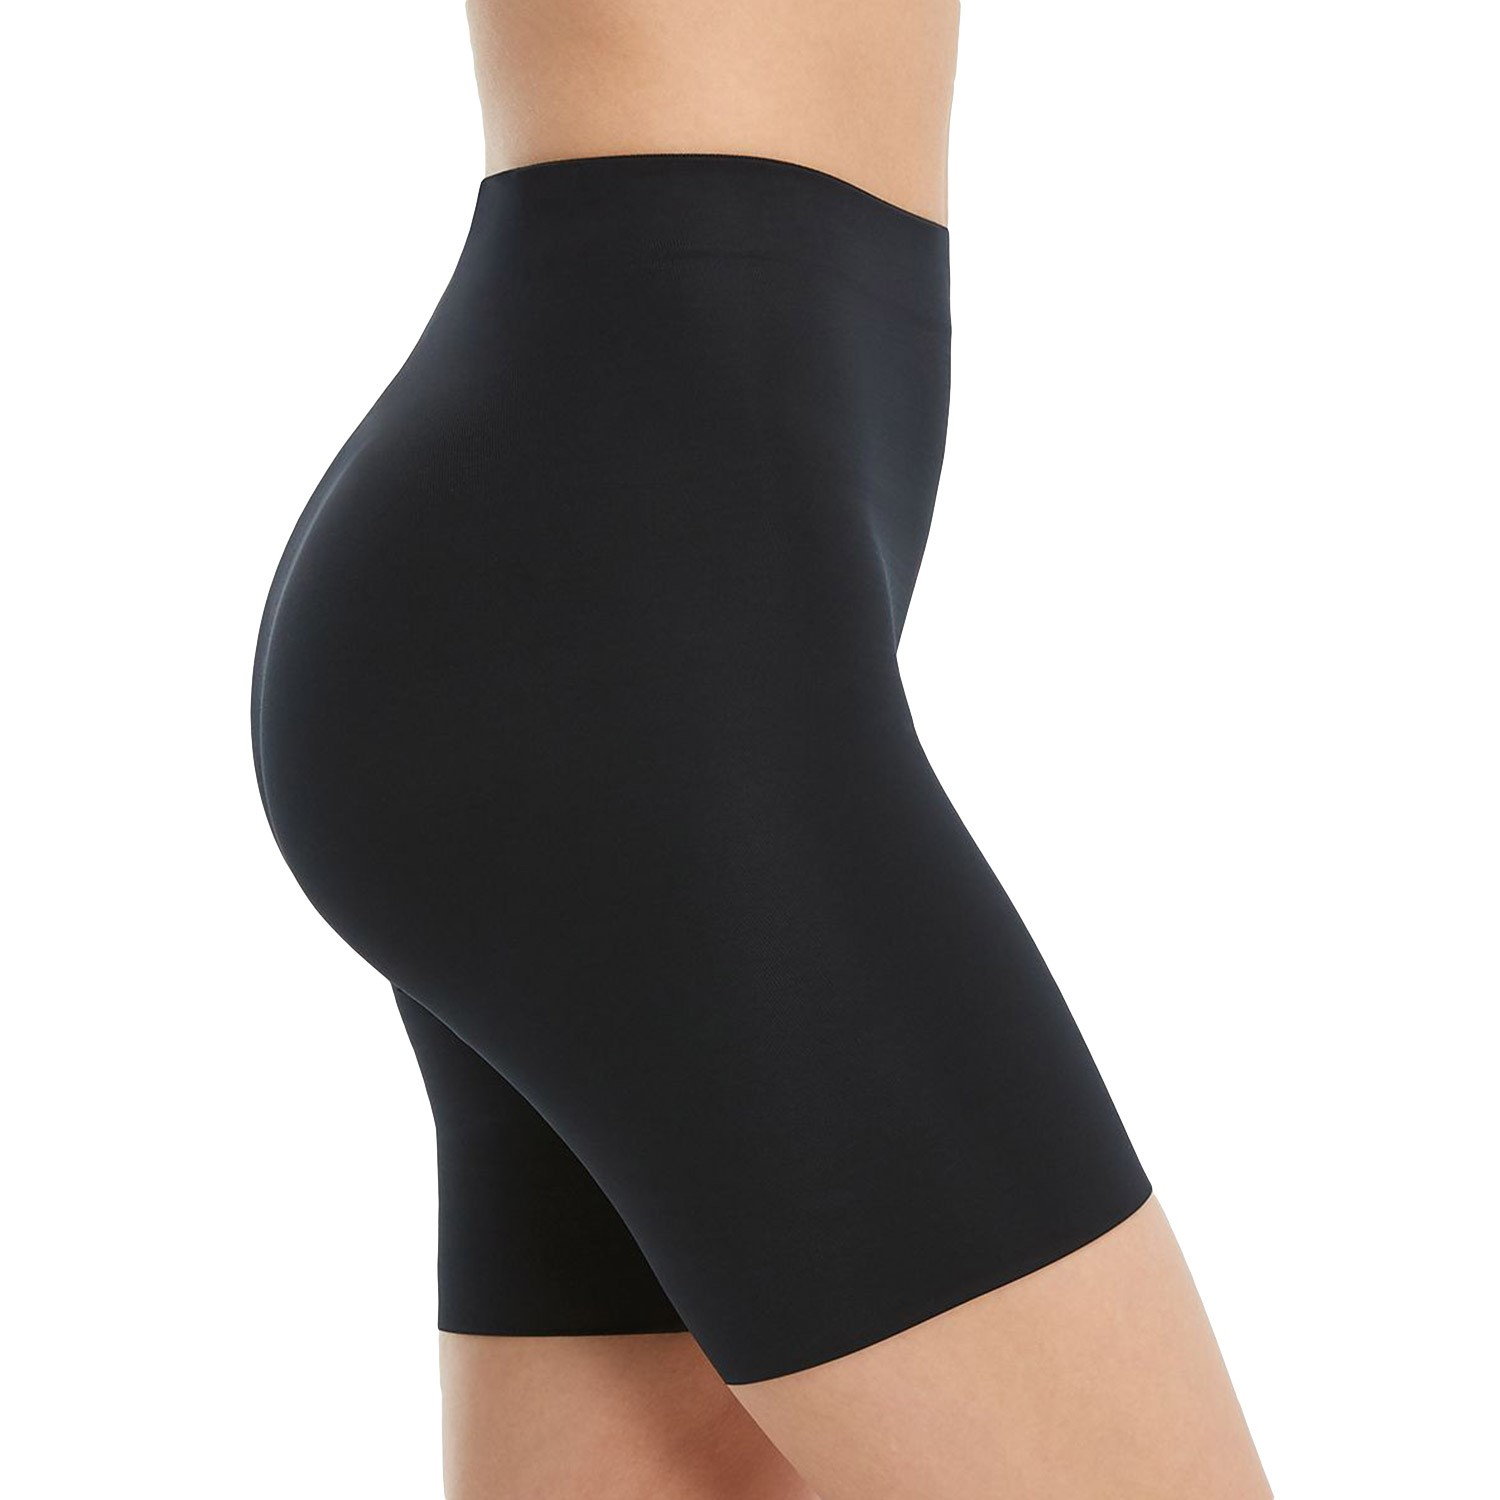 4c6af8bdd1ff3 Spanx Suit Your Fancy Booty Booster Mid-Thigh - Panties/Girdles - Shapewear  - Underwear - Timarco.co.uk